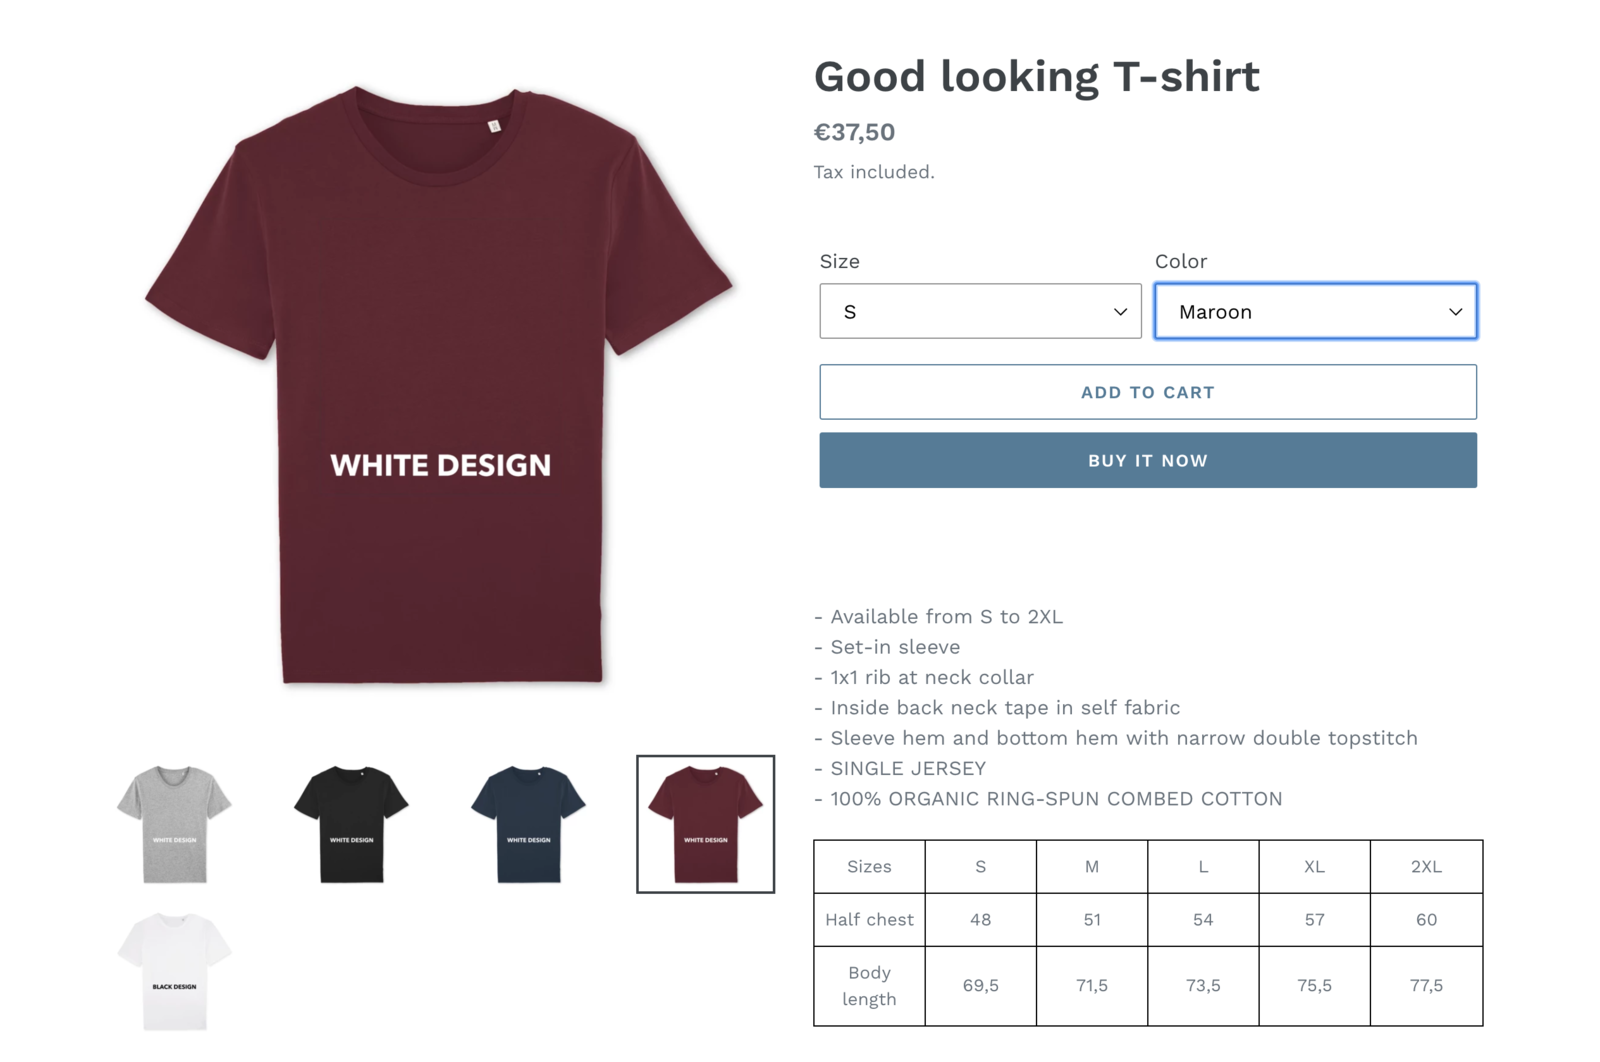 Final product on your webshop